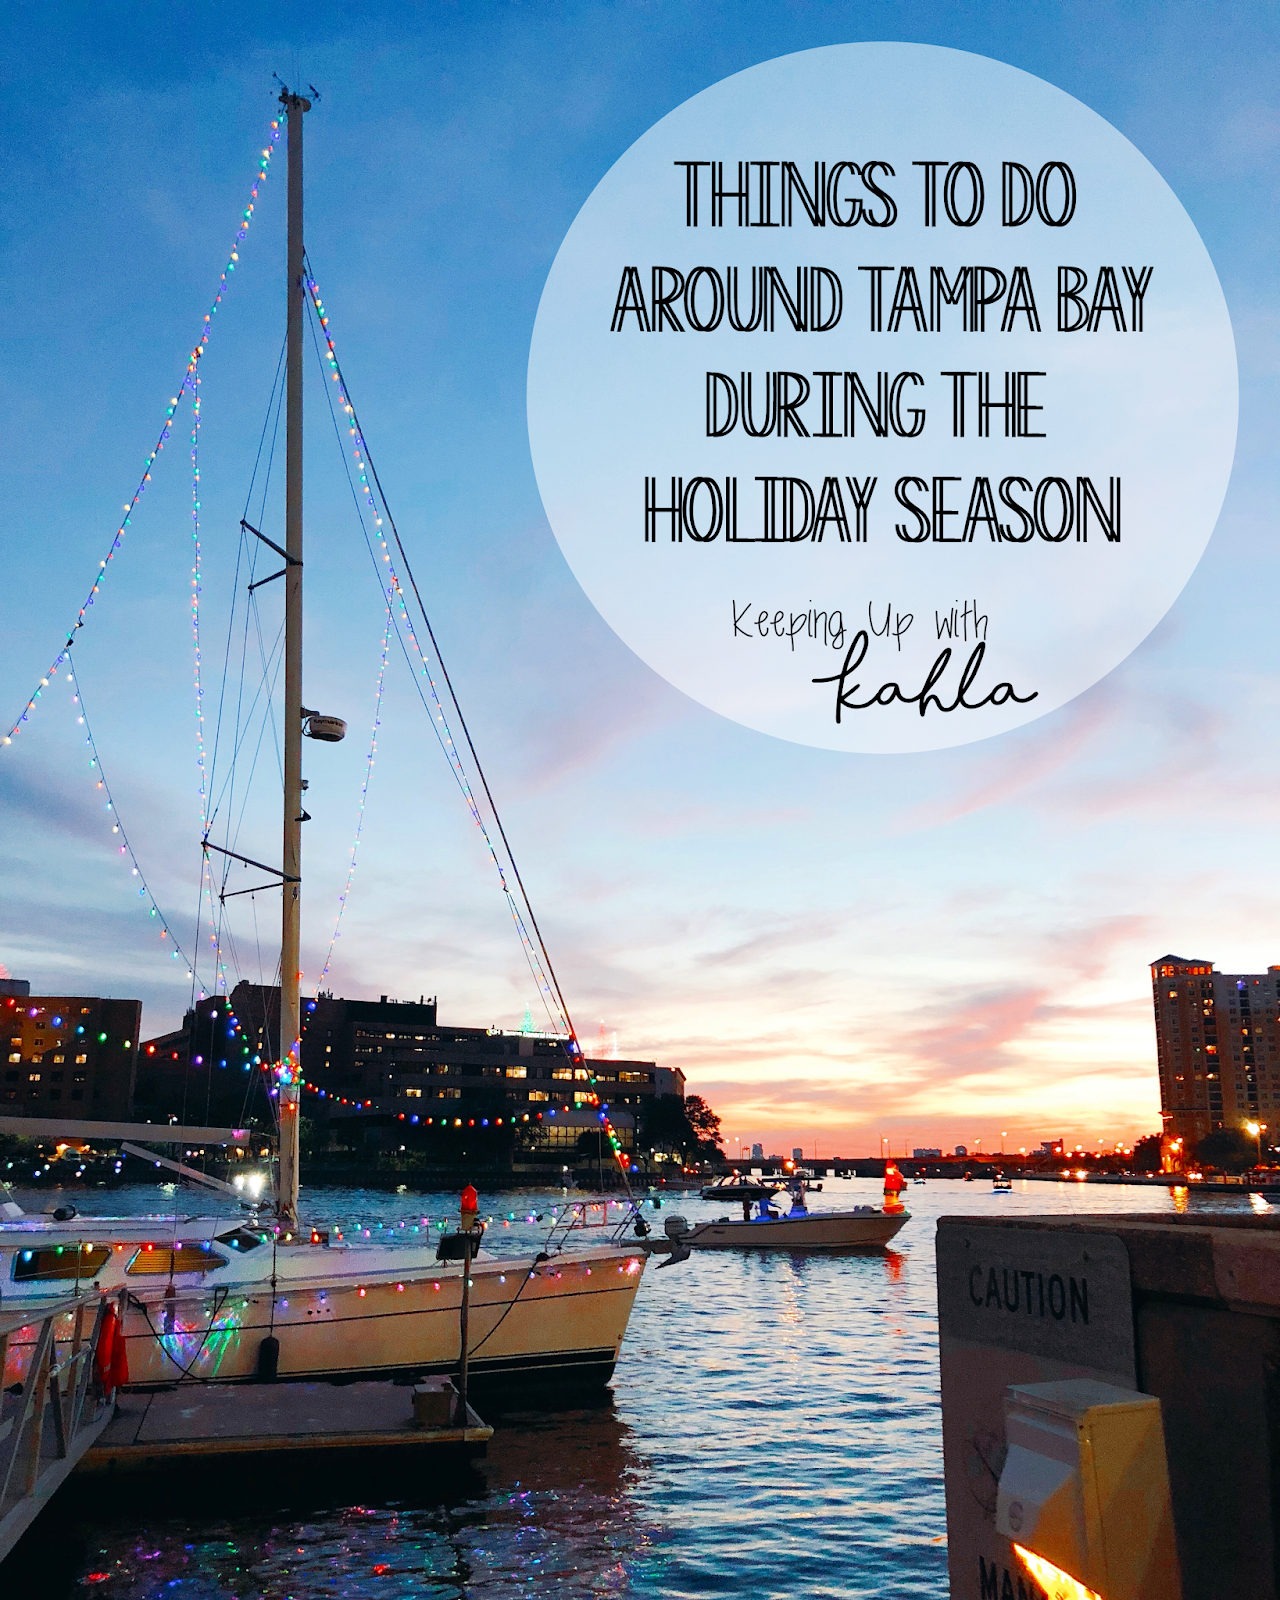 Things to do Around Tampa Bay During the Holiday Season. Featuring the Tampa Holiday Lighted Boat Parade.